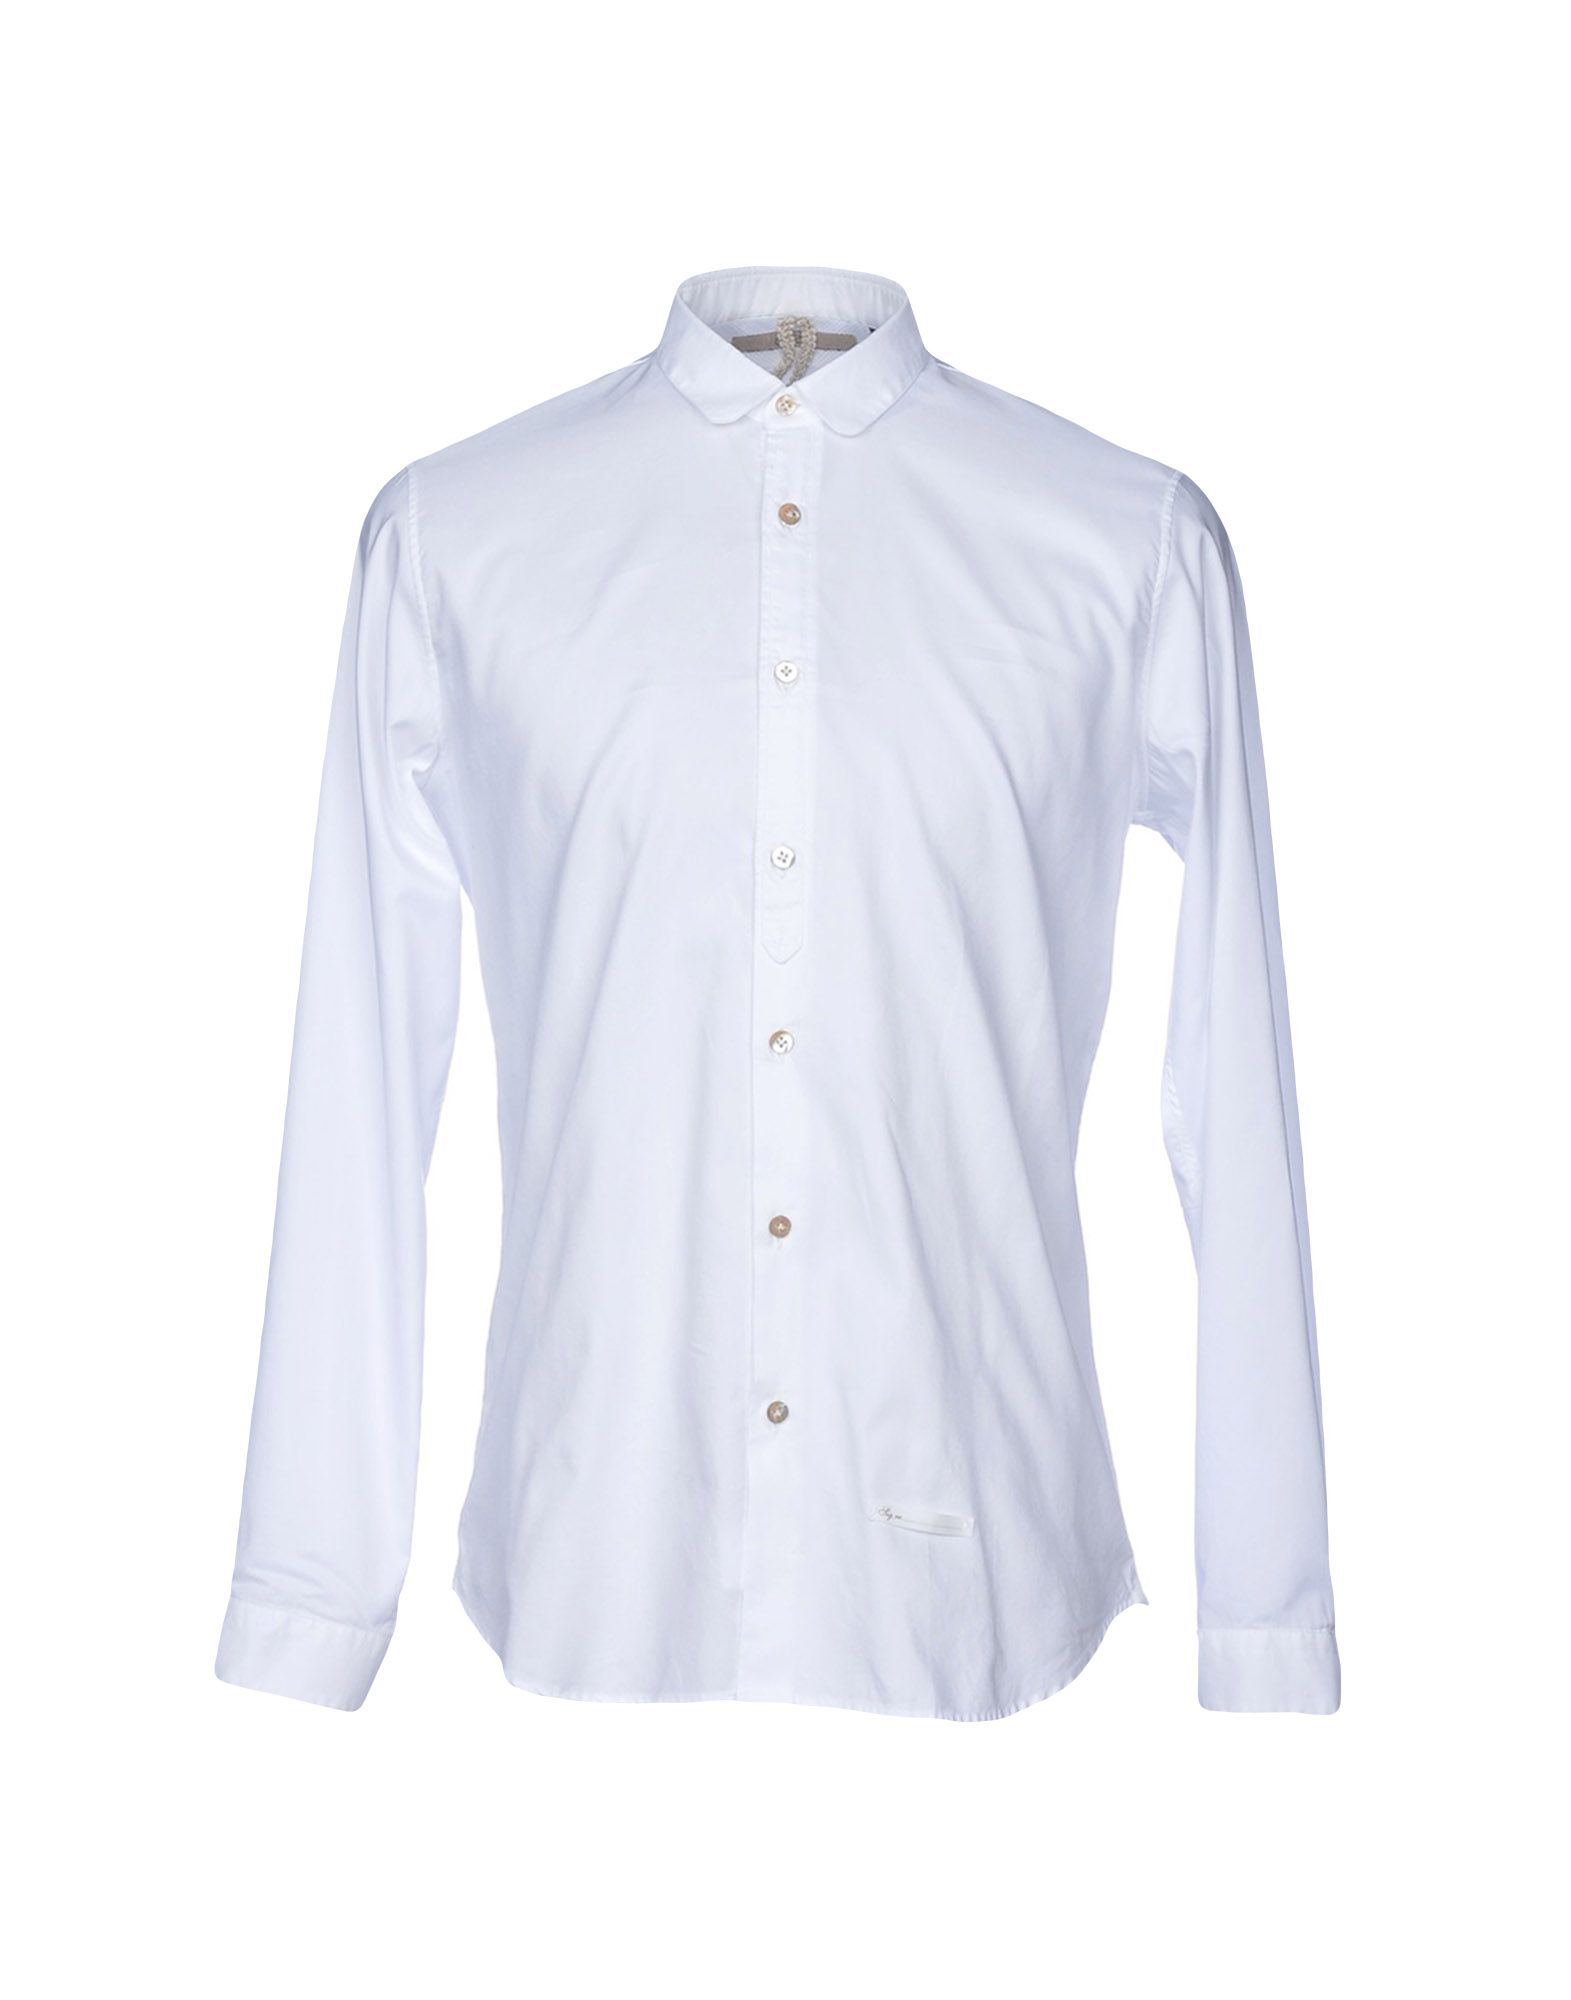 DNL Solid Color Shirt in White